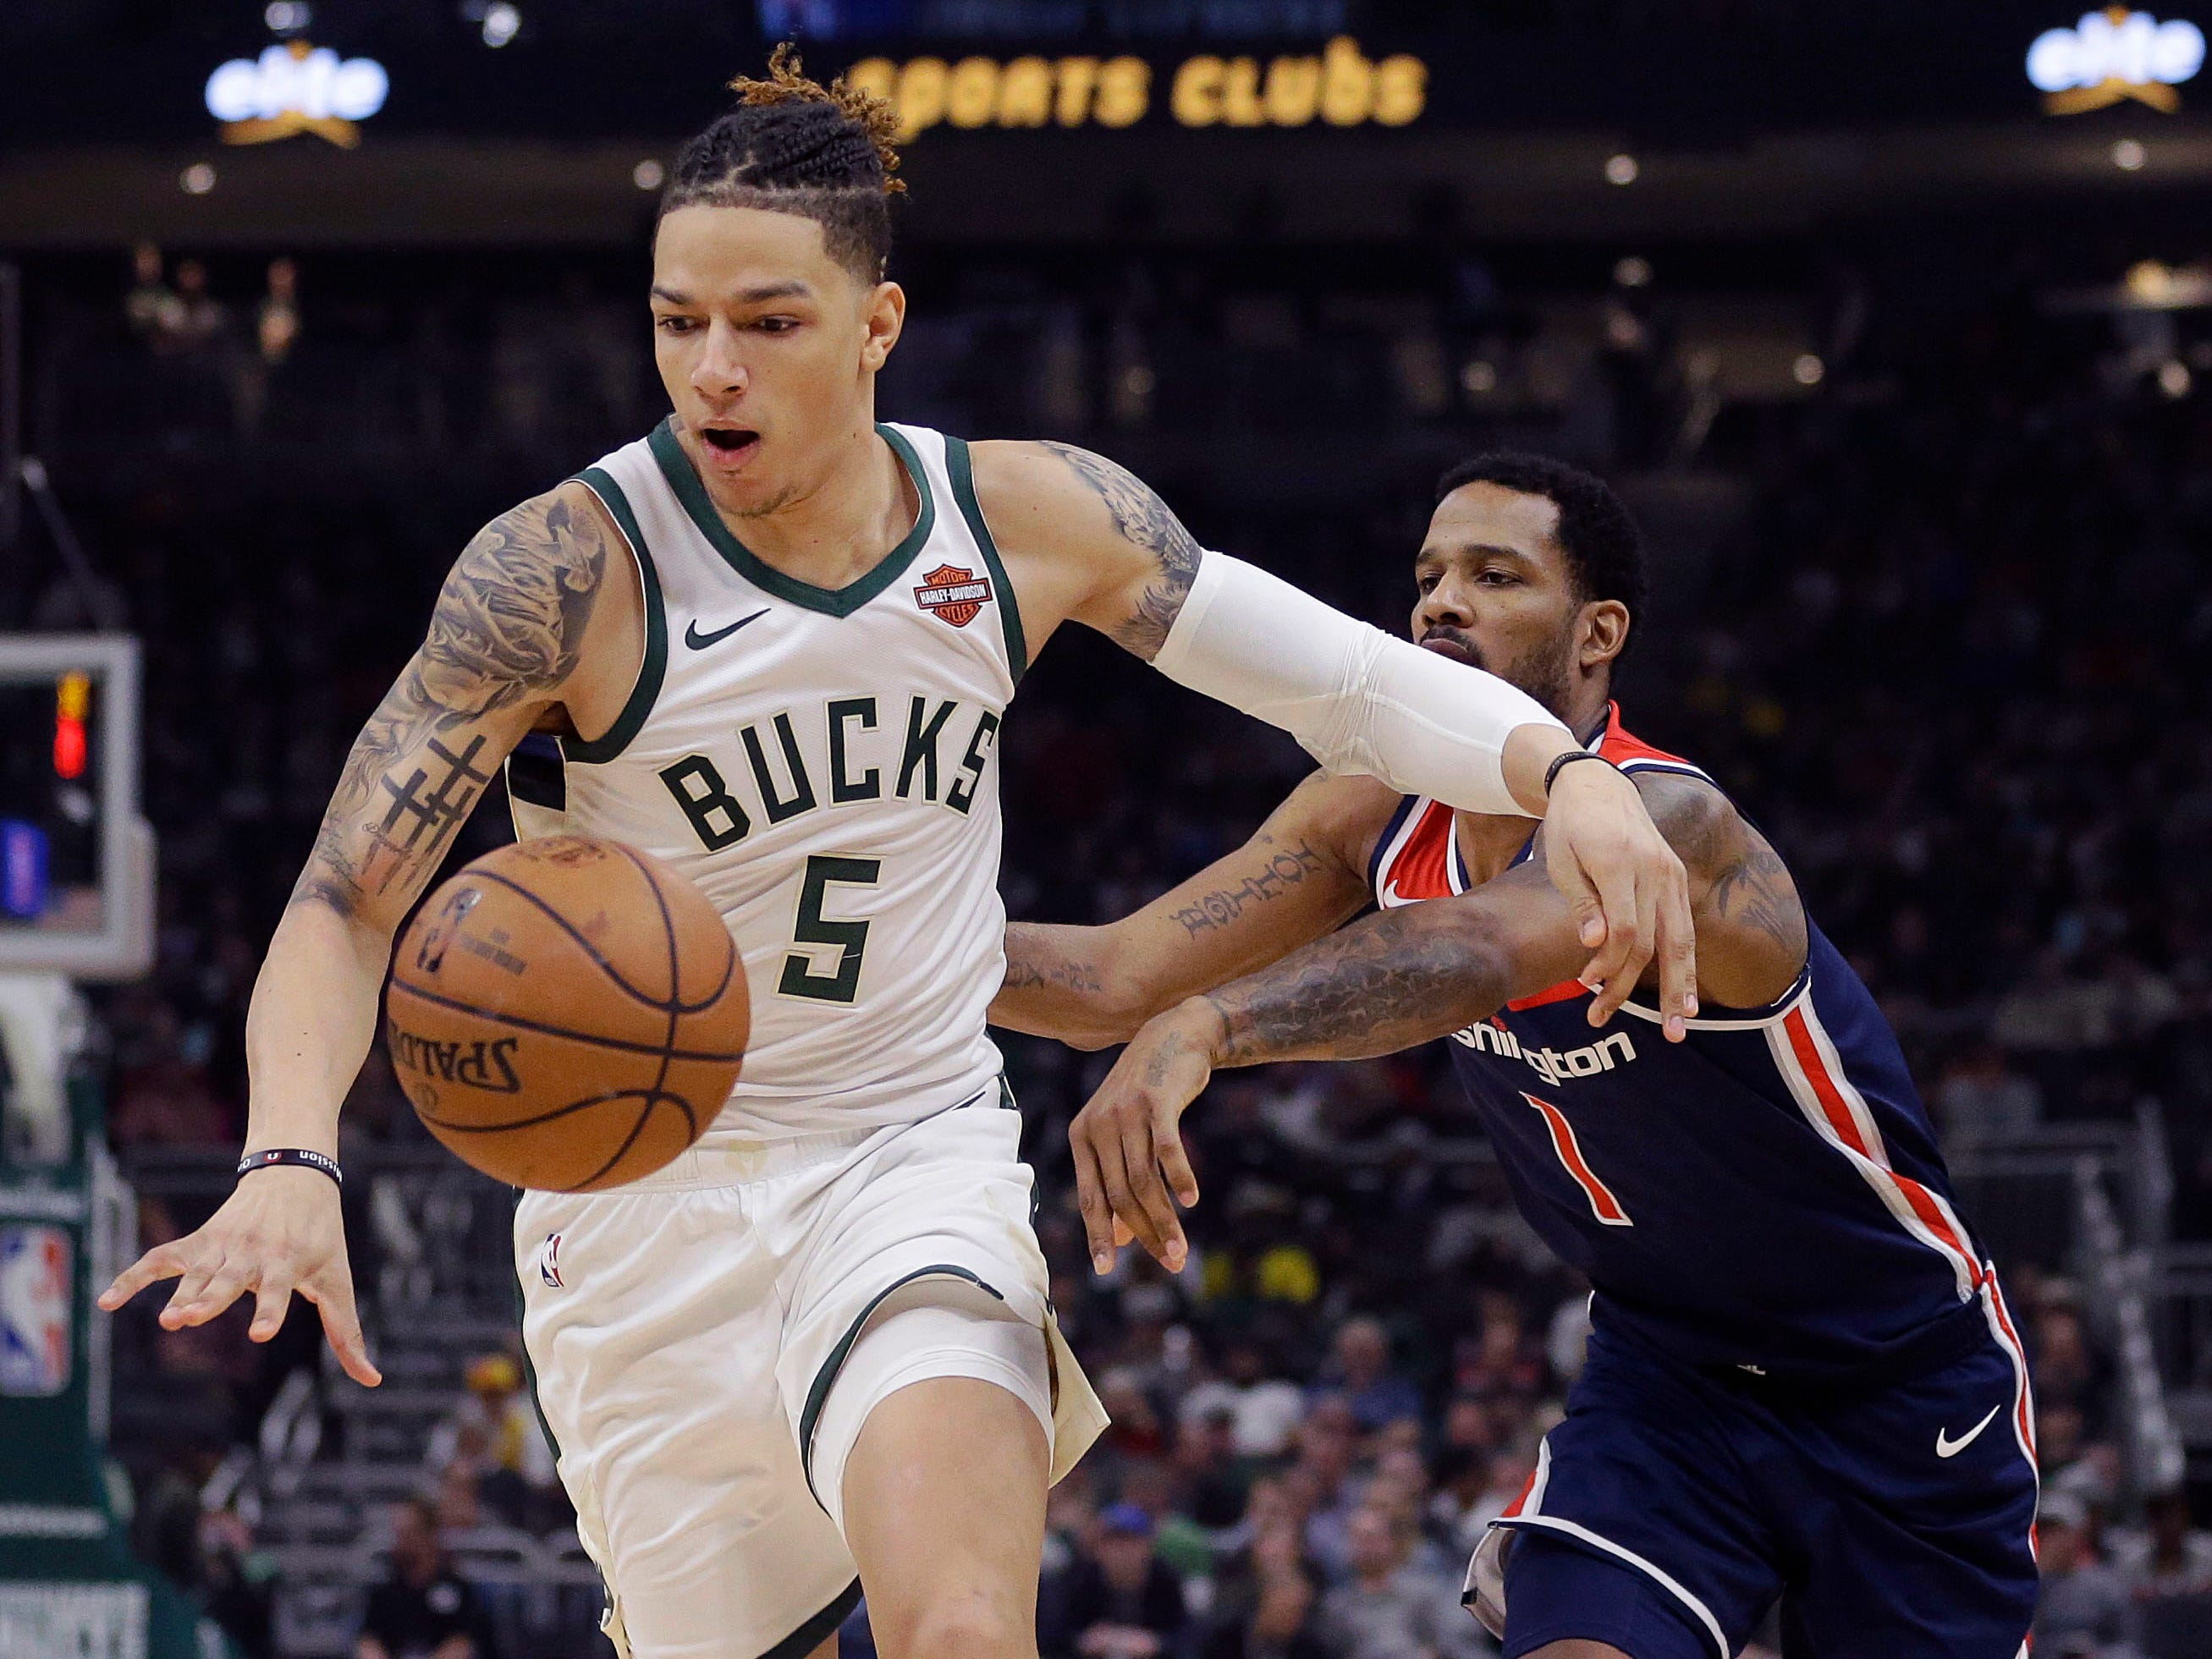 Bucks forward D.J. Wilson gets to a loose ball ahead of  Trevor Ariza of the Wizards during the first half Wednesday.